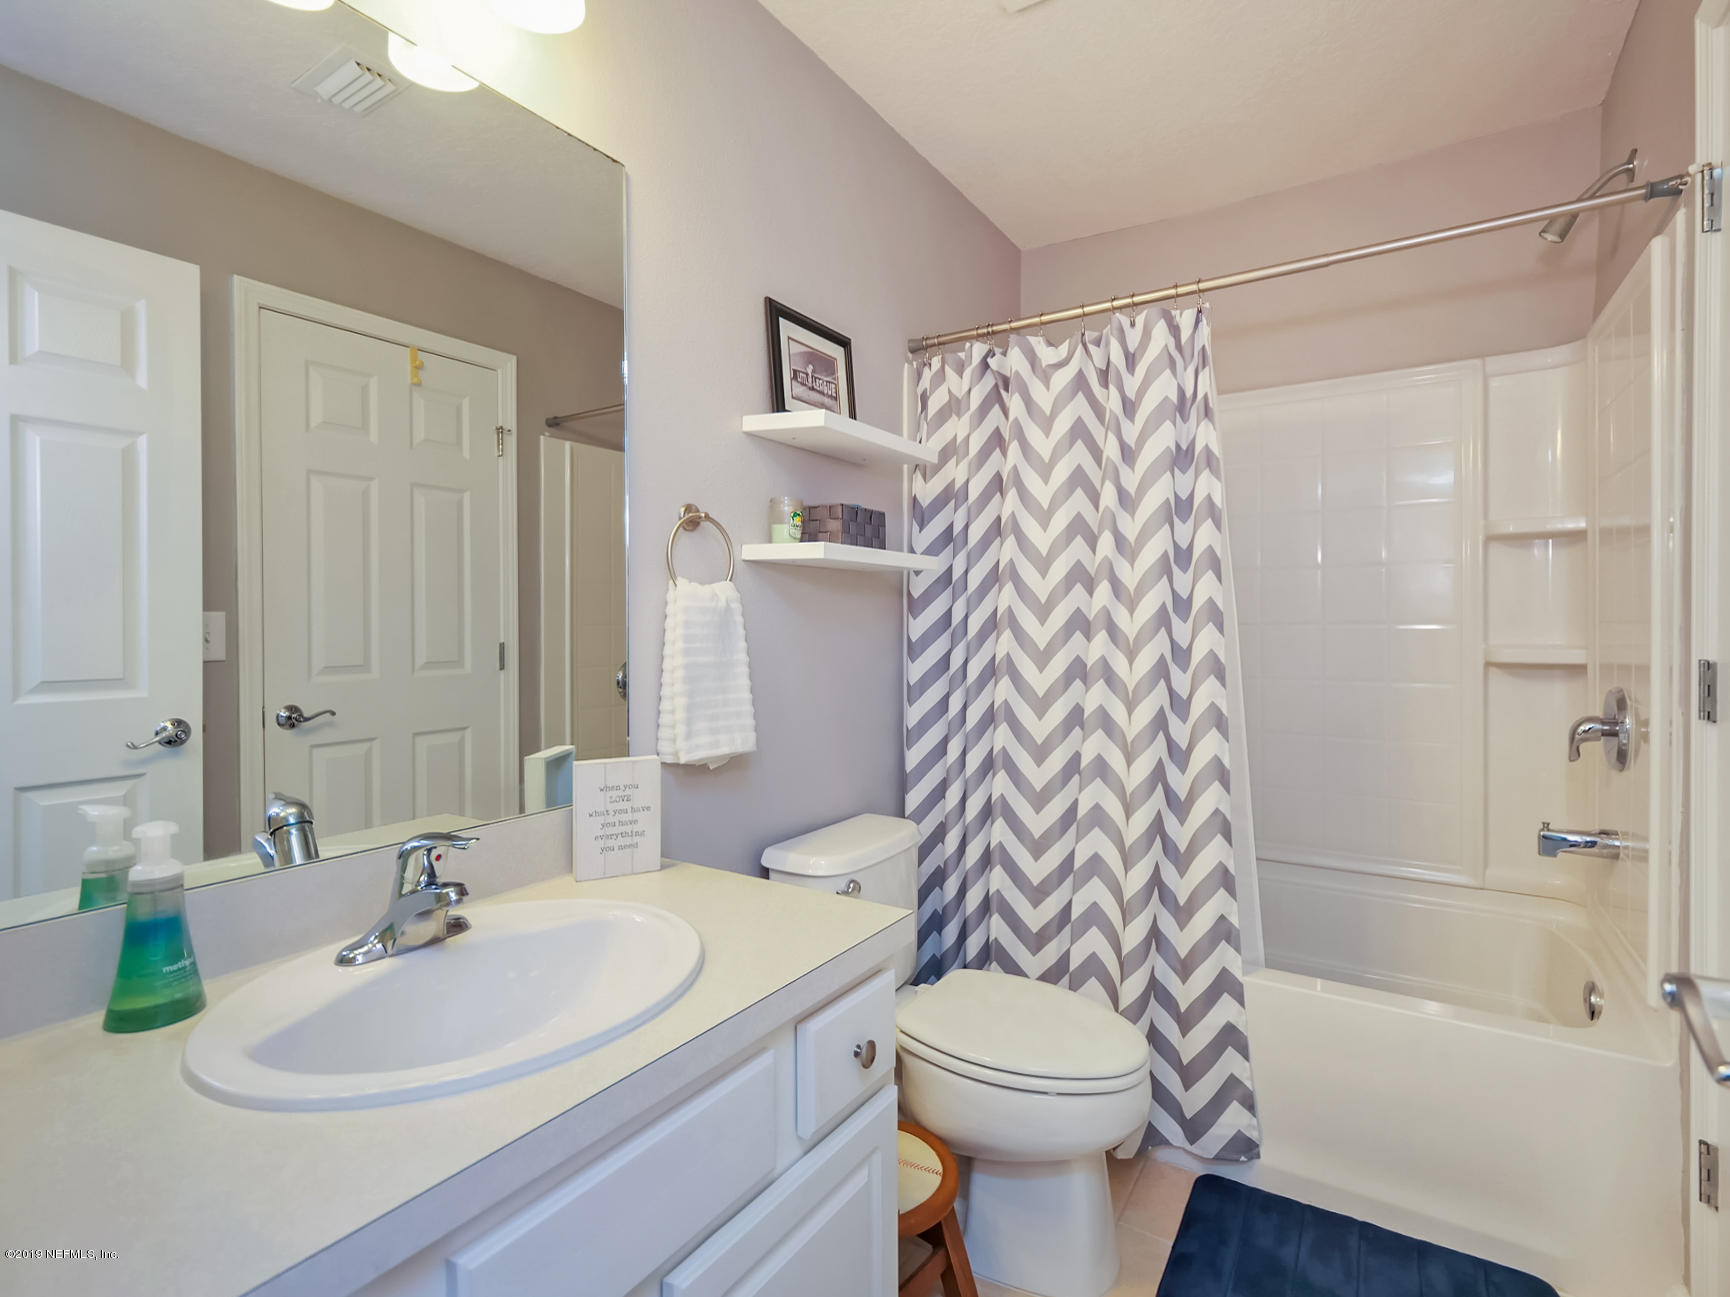 13301 STONE POND, JACKSONVILLE, FLORIDA 32224, 2 Bedrooms Bedrooms, ,2 BathroomsBathrooms,Residential - townhome,For sale,STONE POND,974176